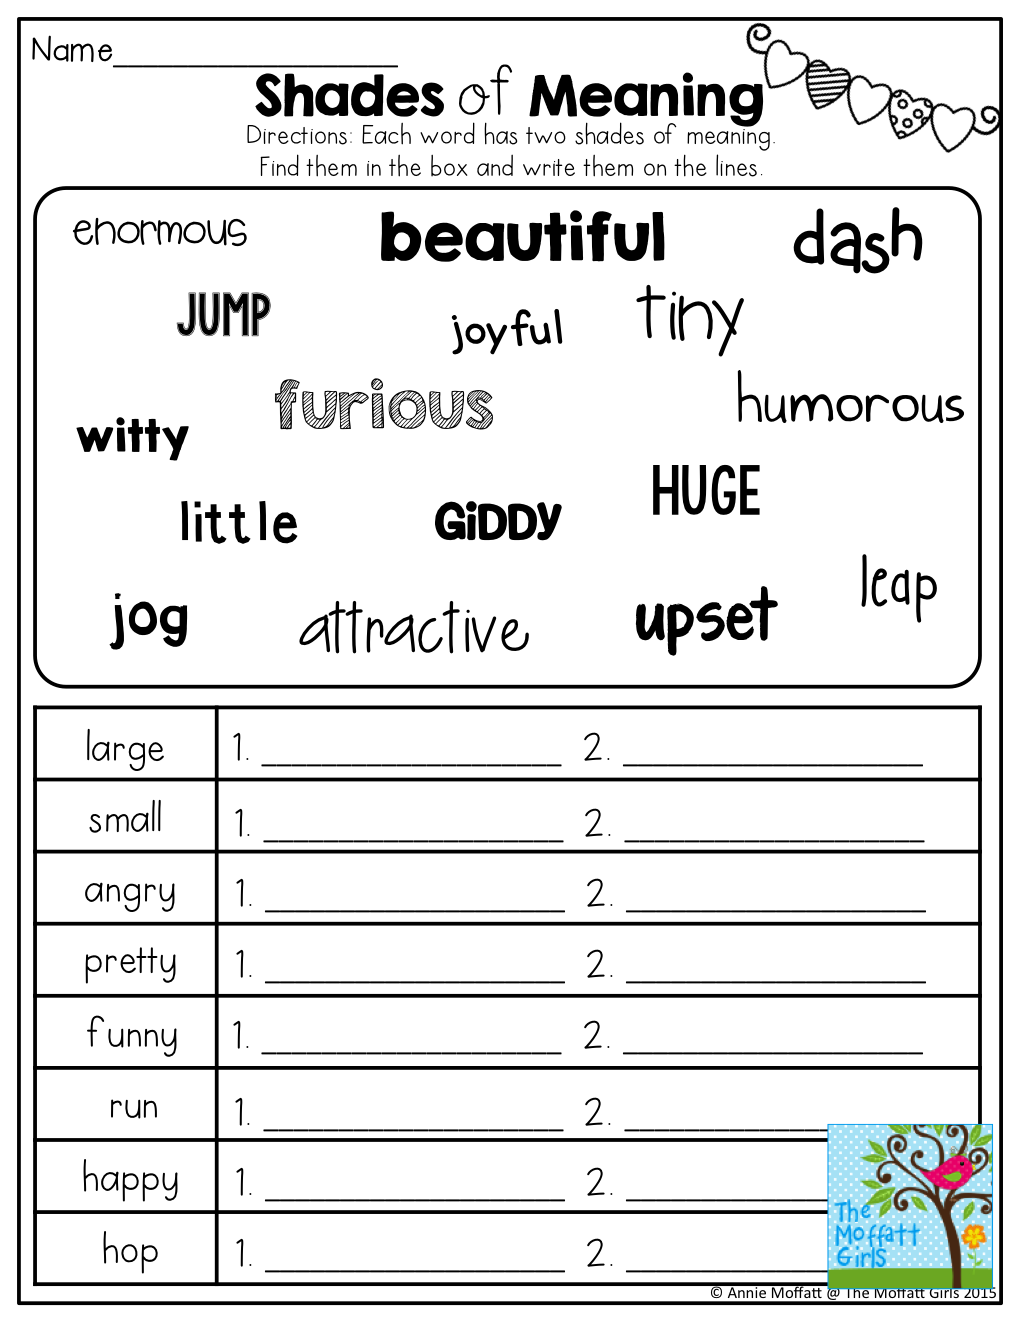 Shades Of Meaning Tons Of Other Great Printables 3rd Grade